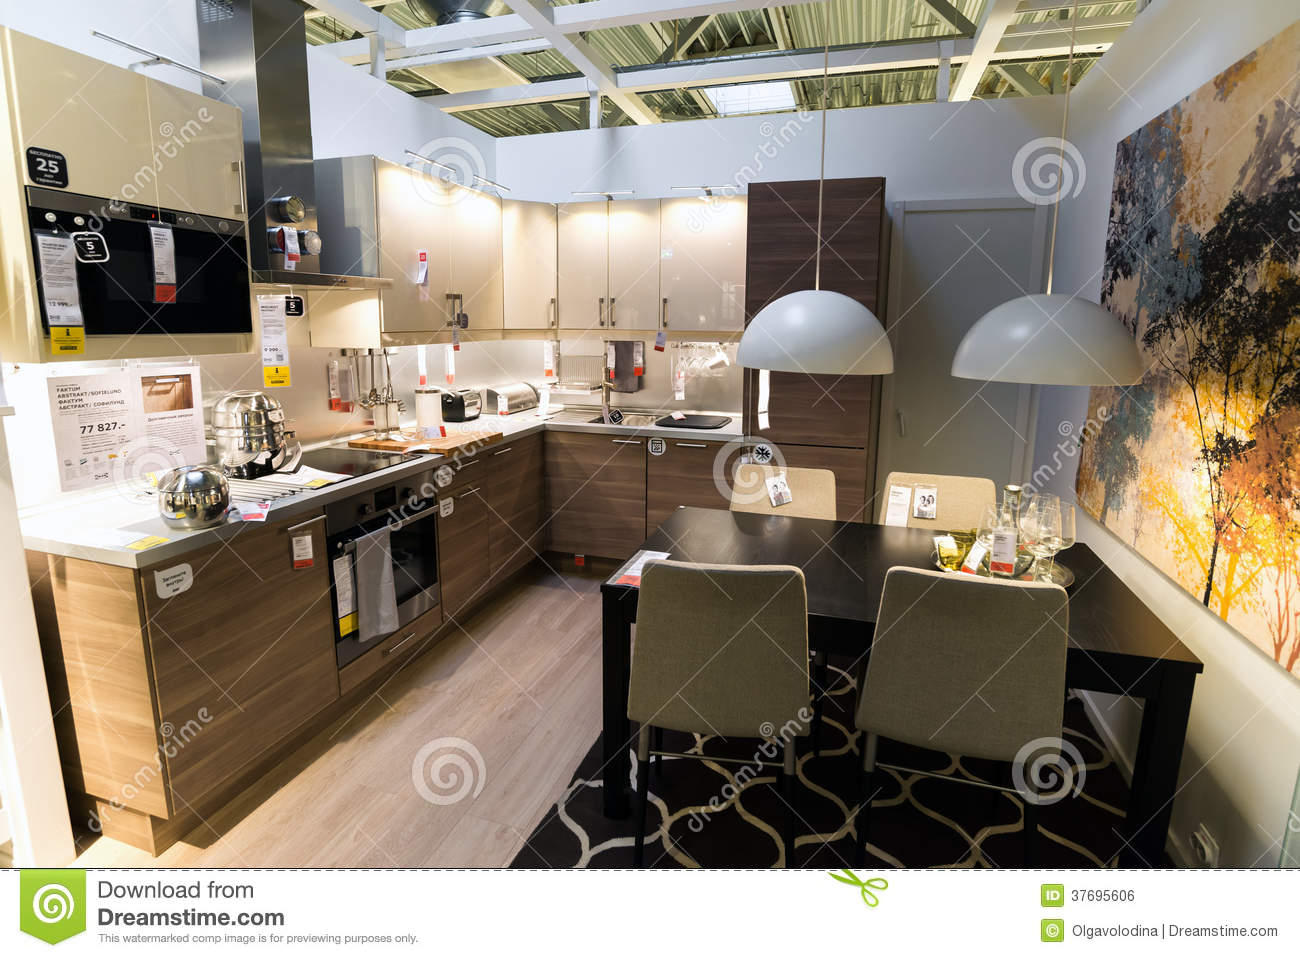 cuisine dans le magasin de meubles ikea photo ditorial. Black Bedroom Furniture Sets. Home Design Ideas